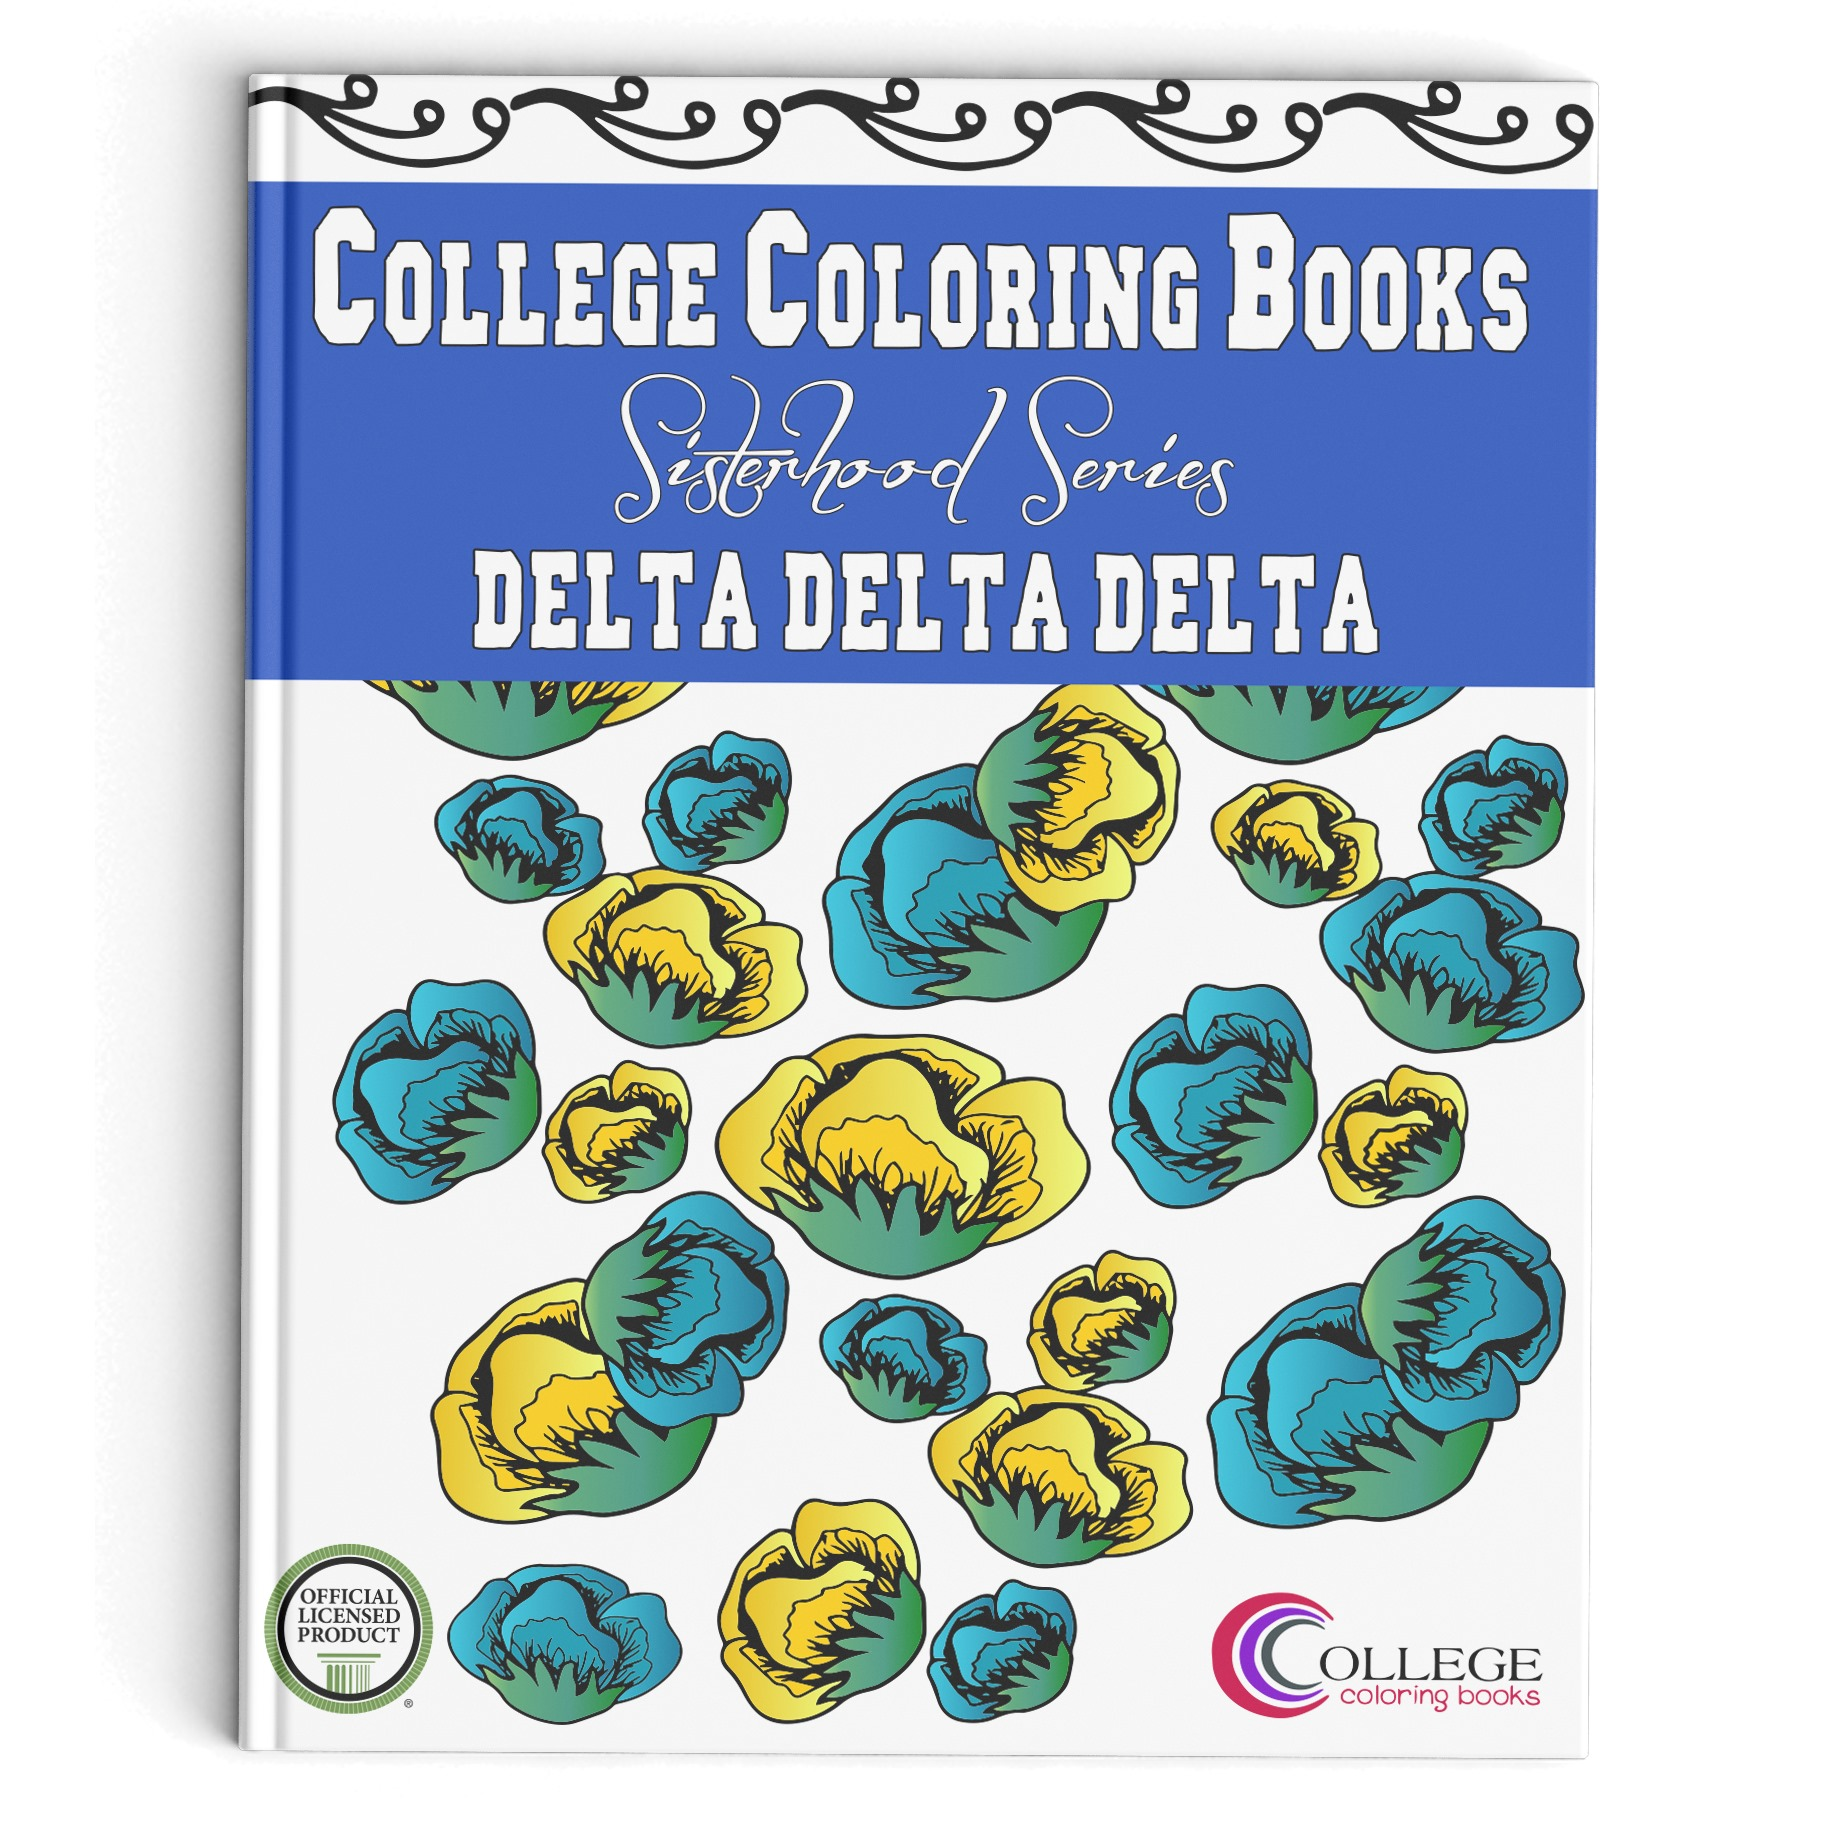 College Coloring Books TriDelta Book Cover